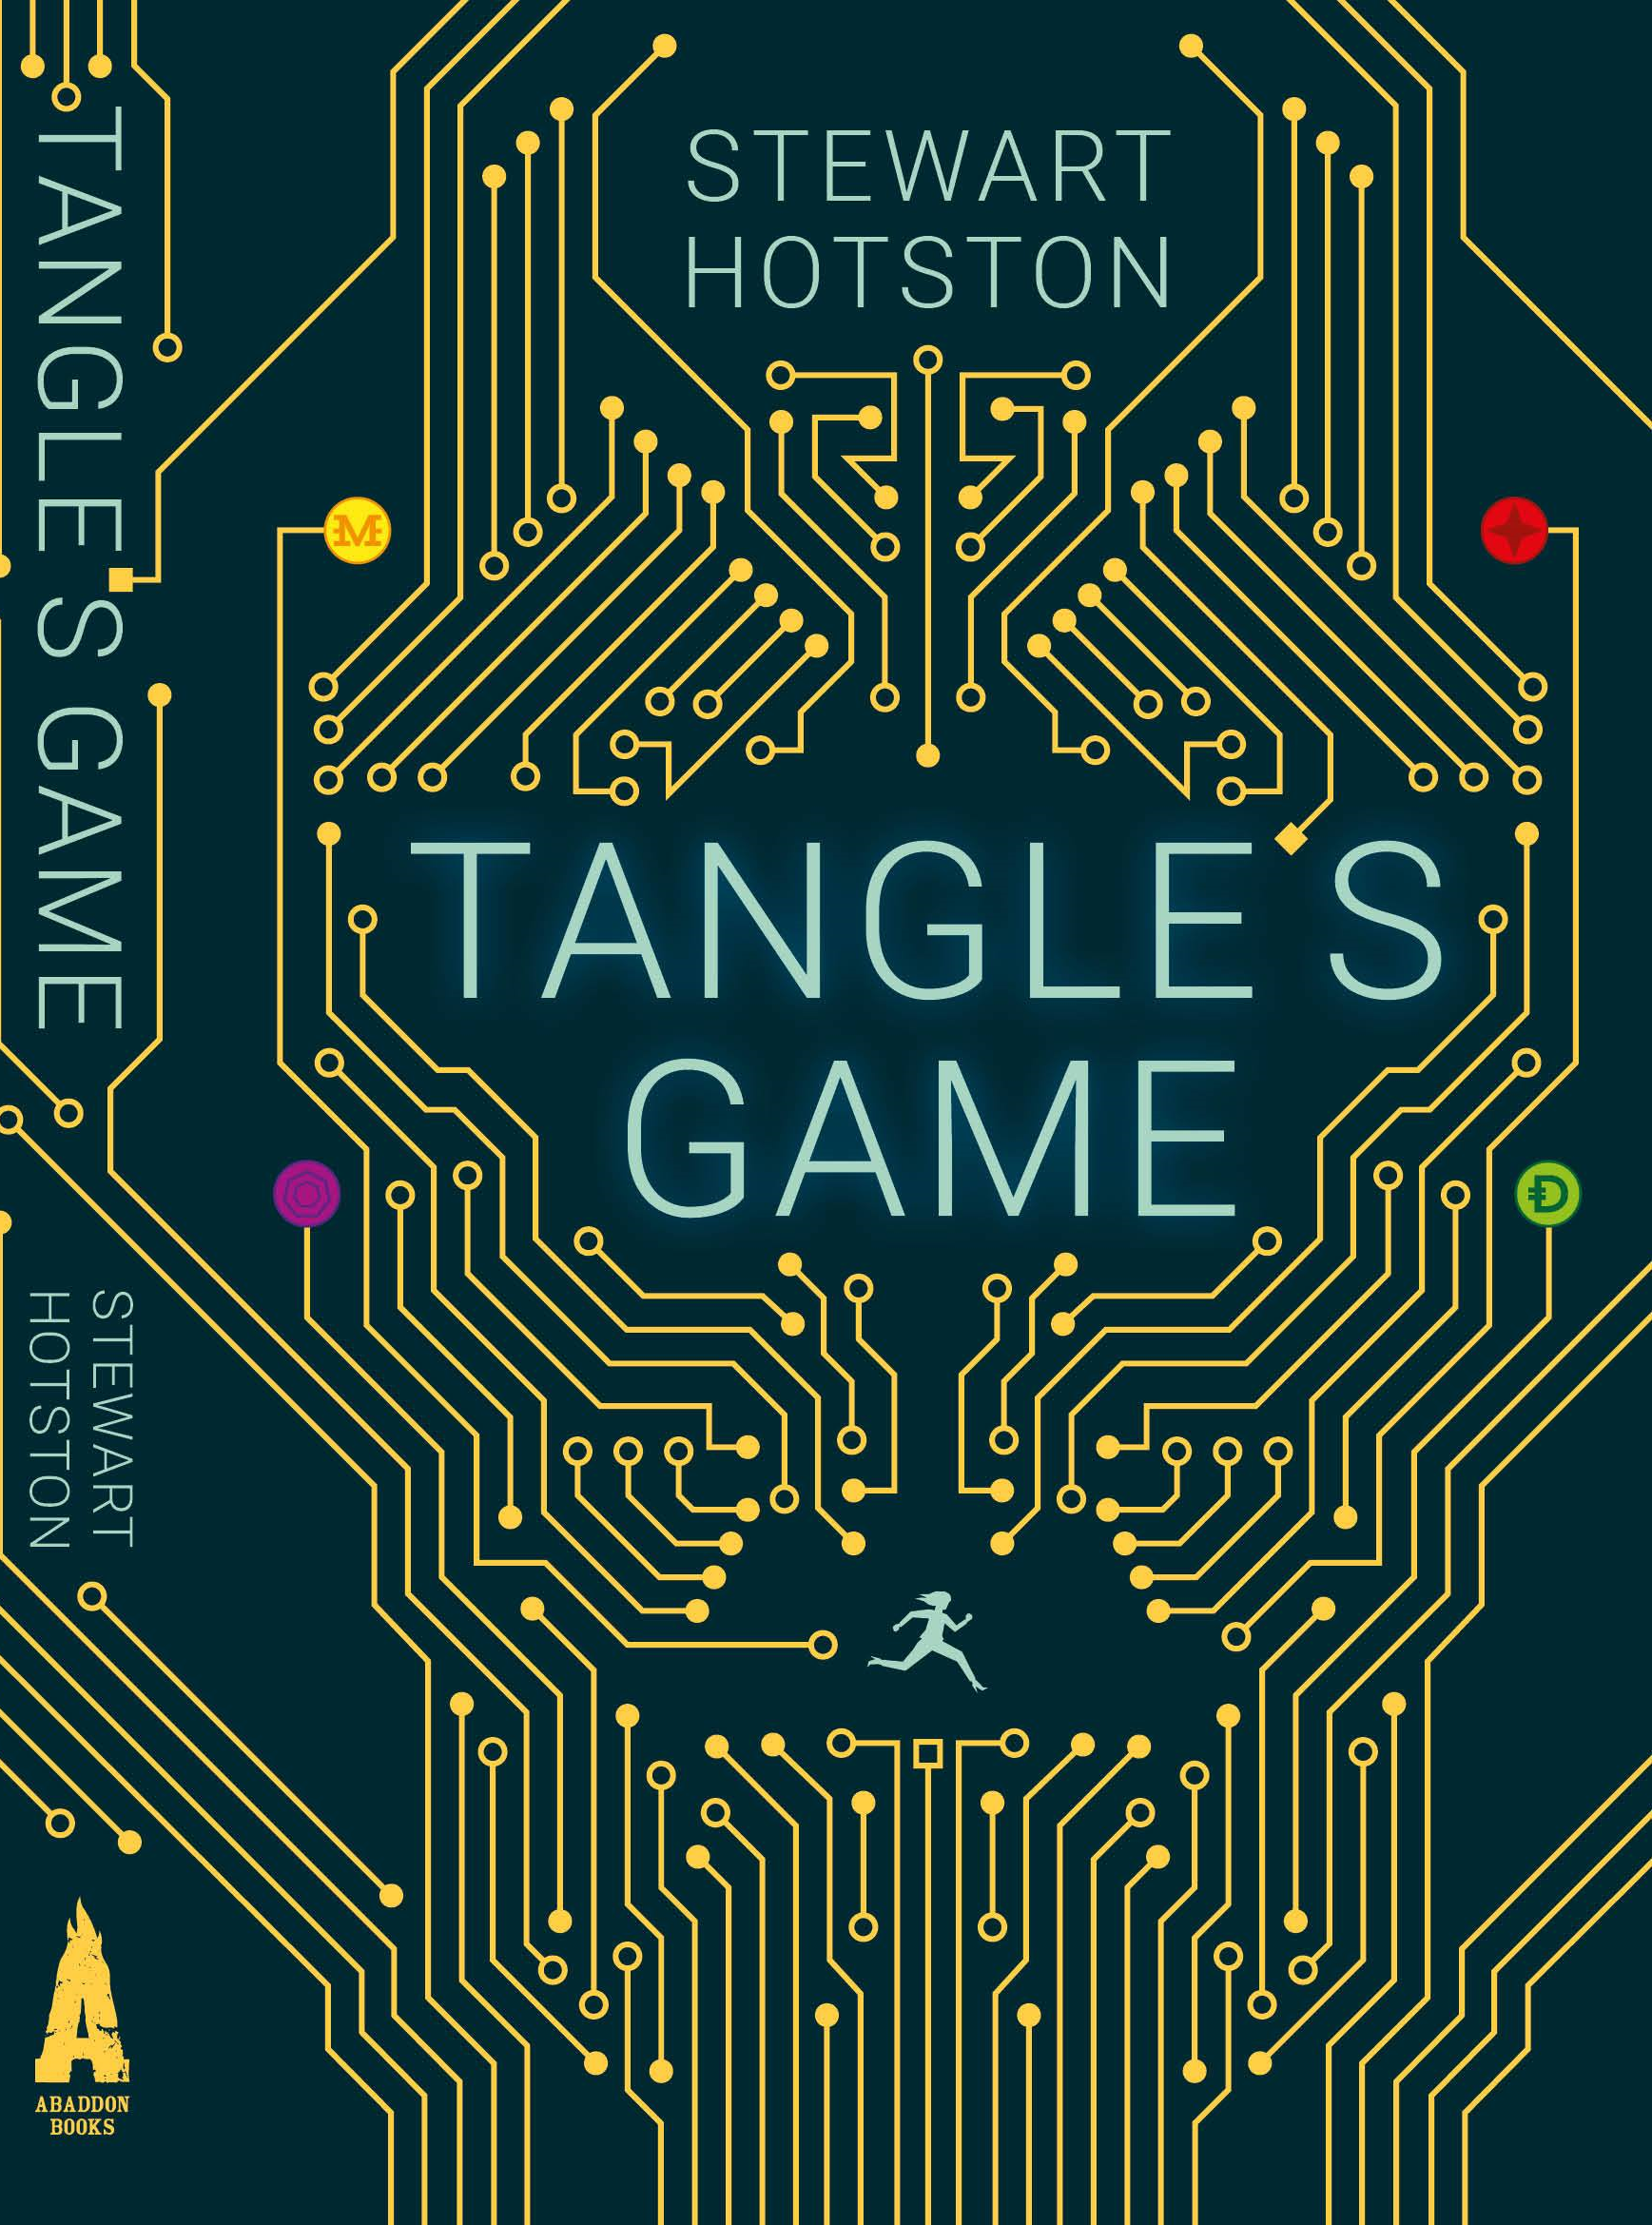 Interesting New Sci-Fi Book Tangle's Game By Stewart Hotston